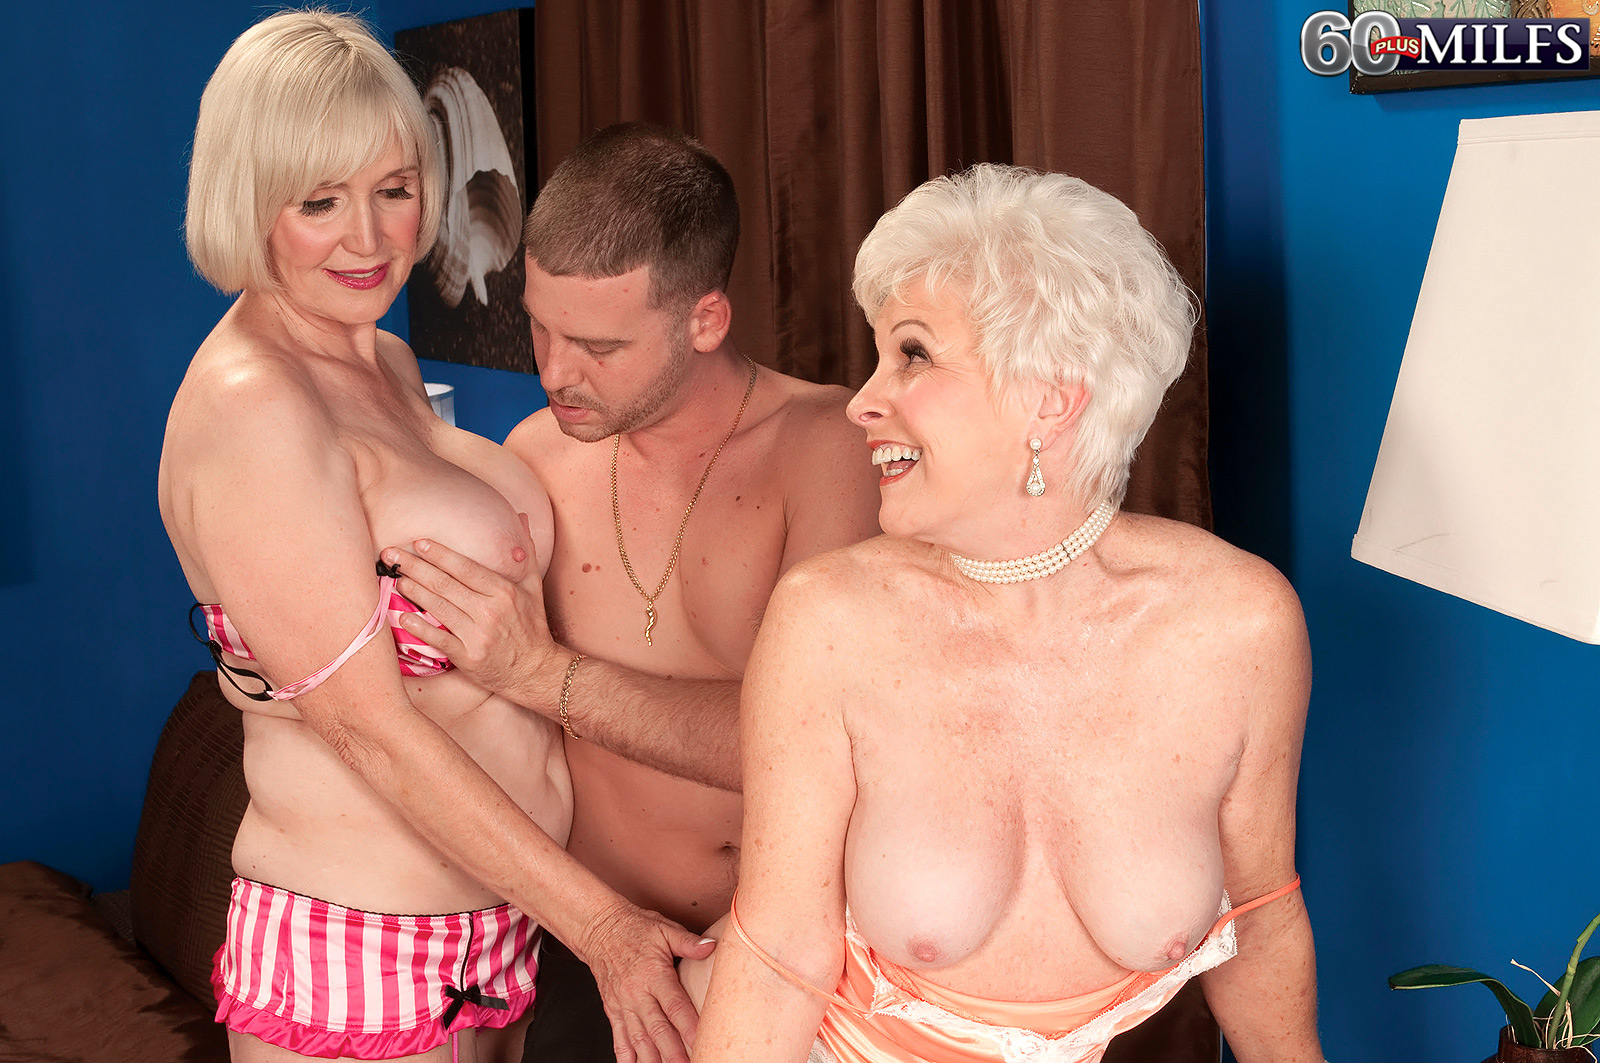 from Parker sexy milf threesome hardcore porn pics